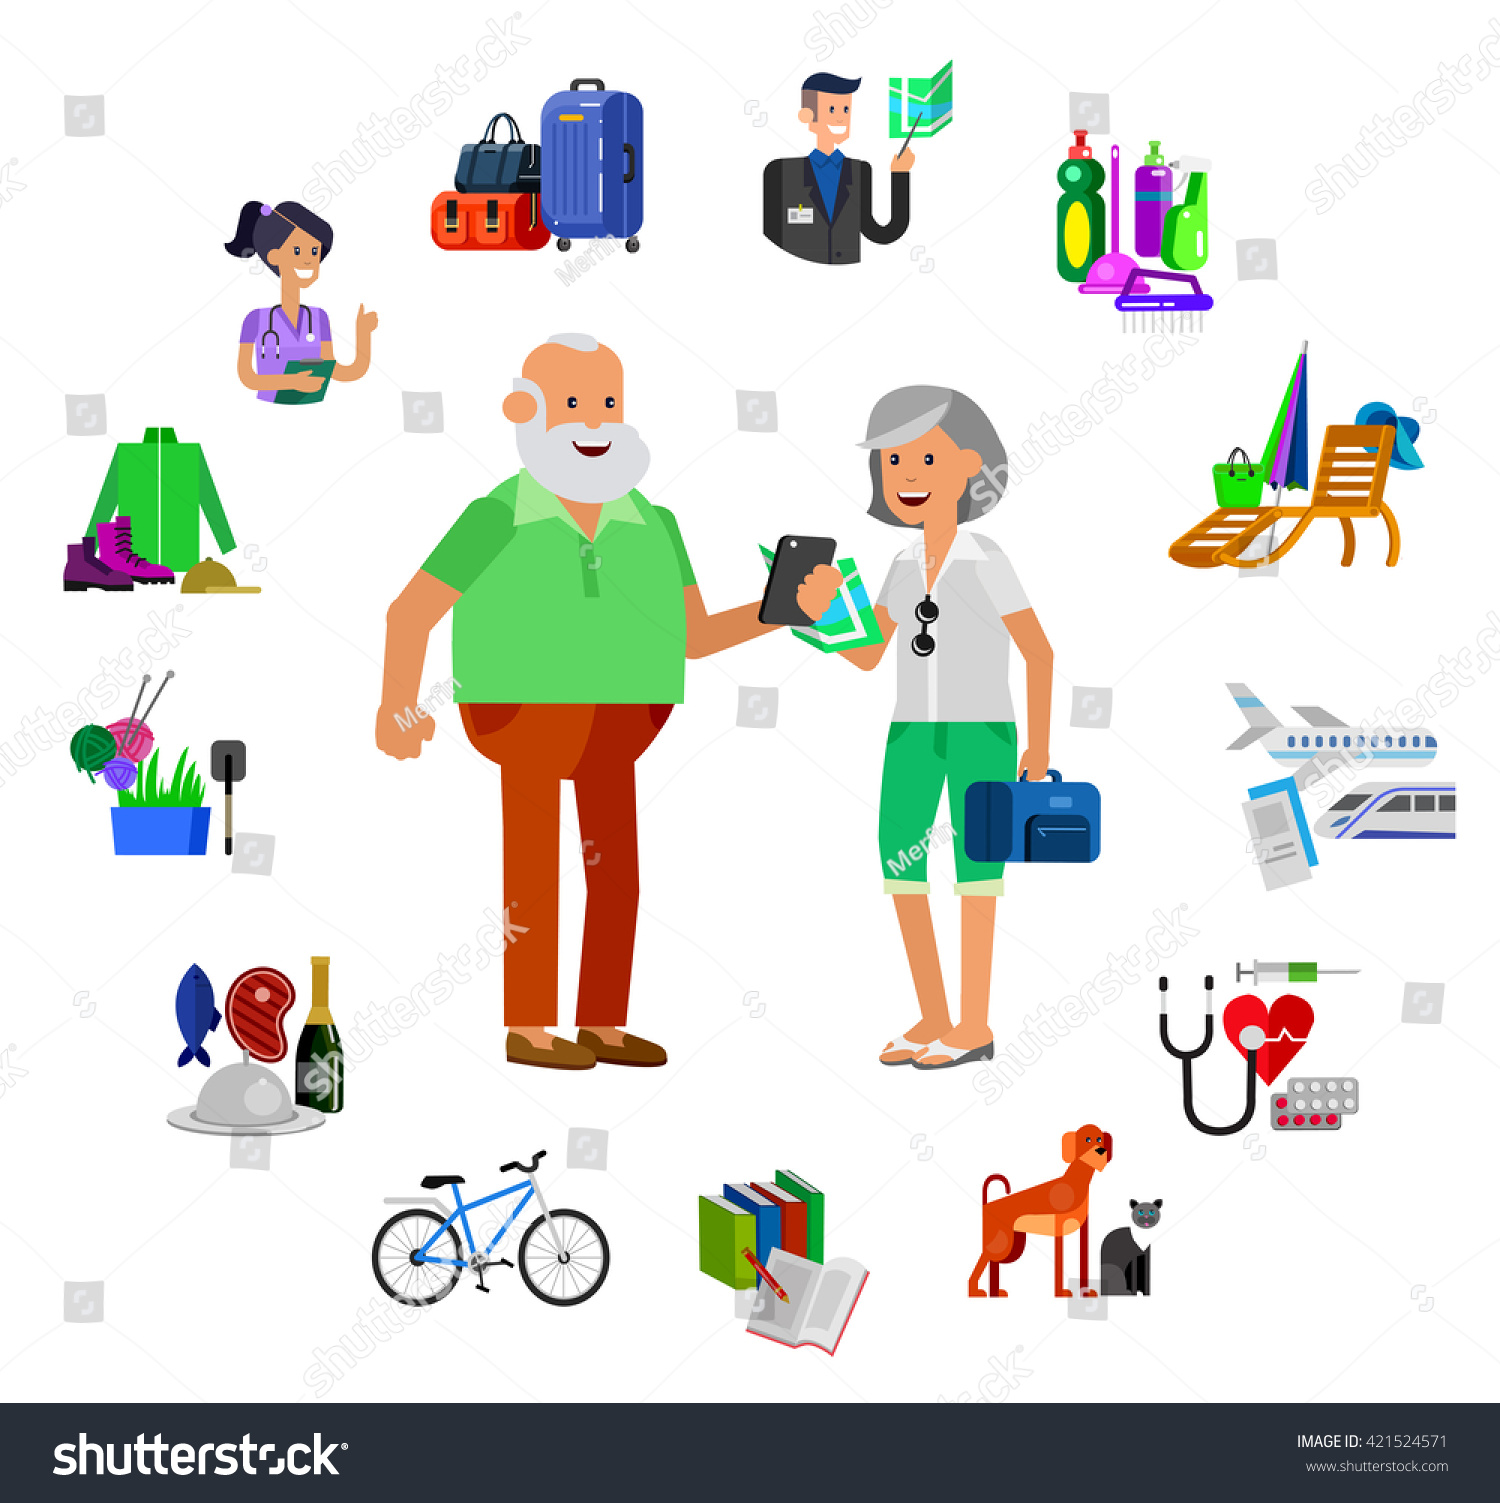 vector detailed character senior old age stock vector 421524571 vector detailed character senior old age man and icons pension hobbies and interests leisure